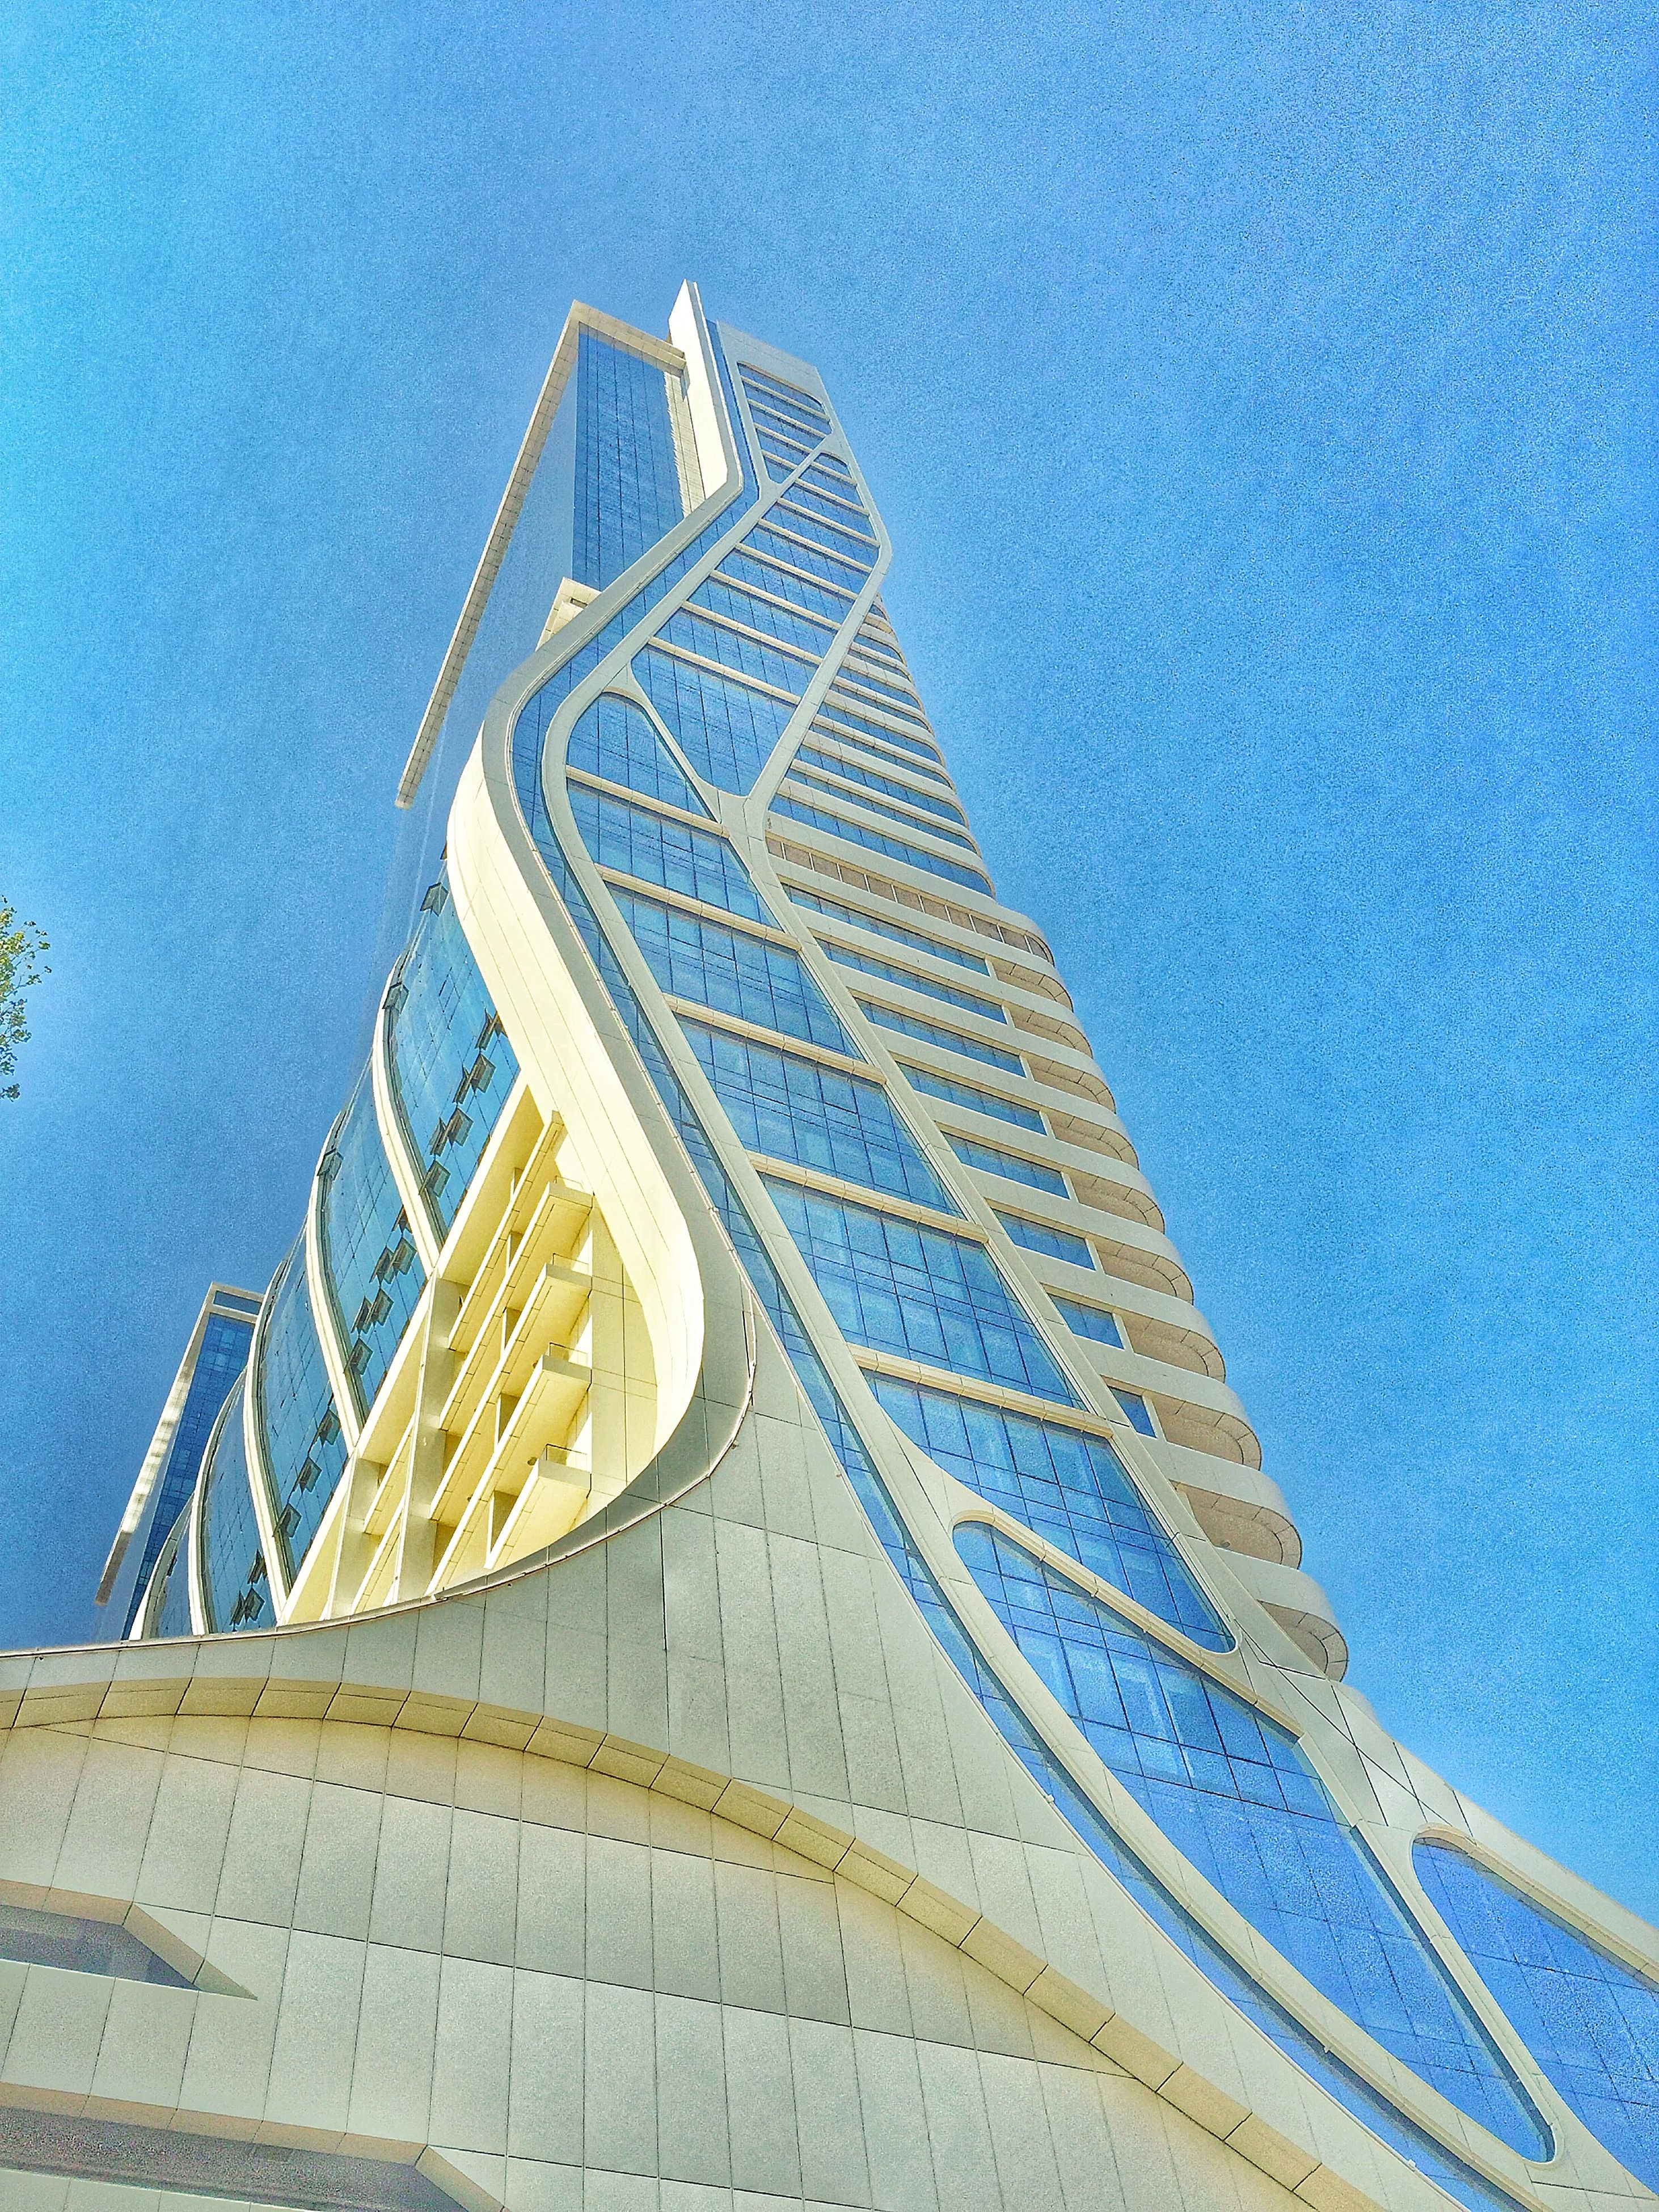 blue, low angle view, built structure, pattern, architecture, white color, building exterior, day, sunlight, outdoors, clear sky, no people, copy space, sky, shadow, design, turquoise colored, high angle view, art, white